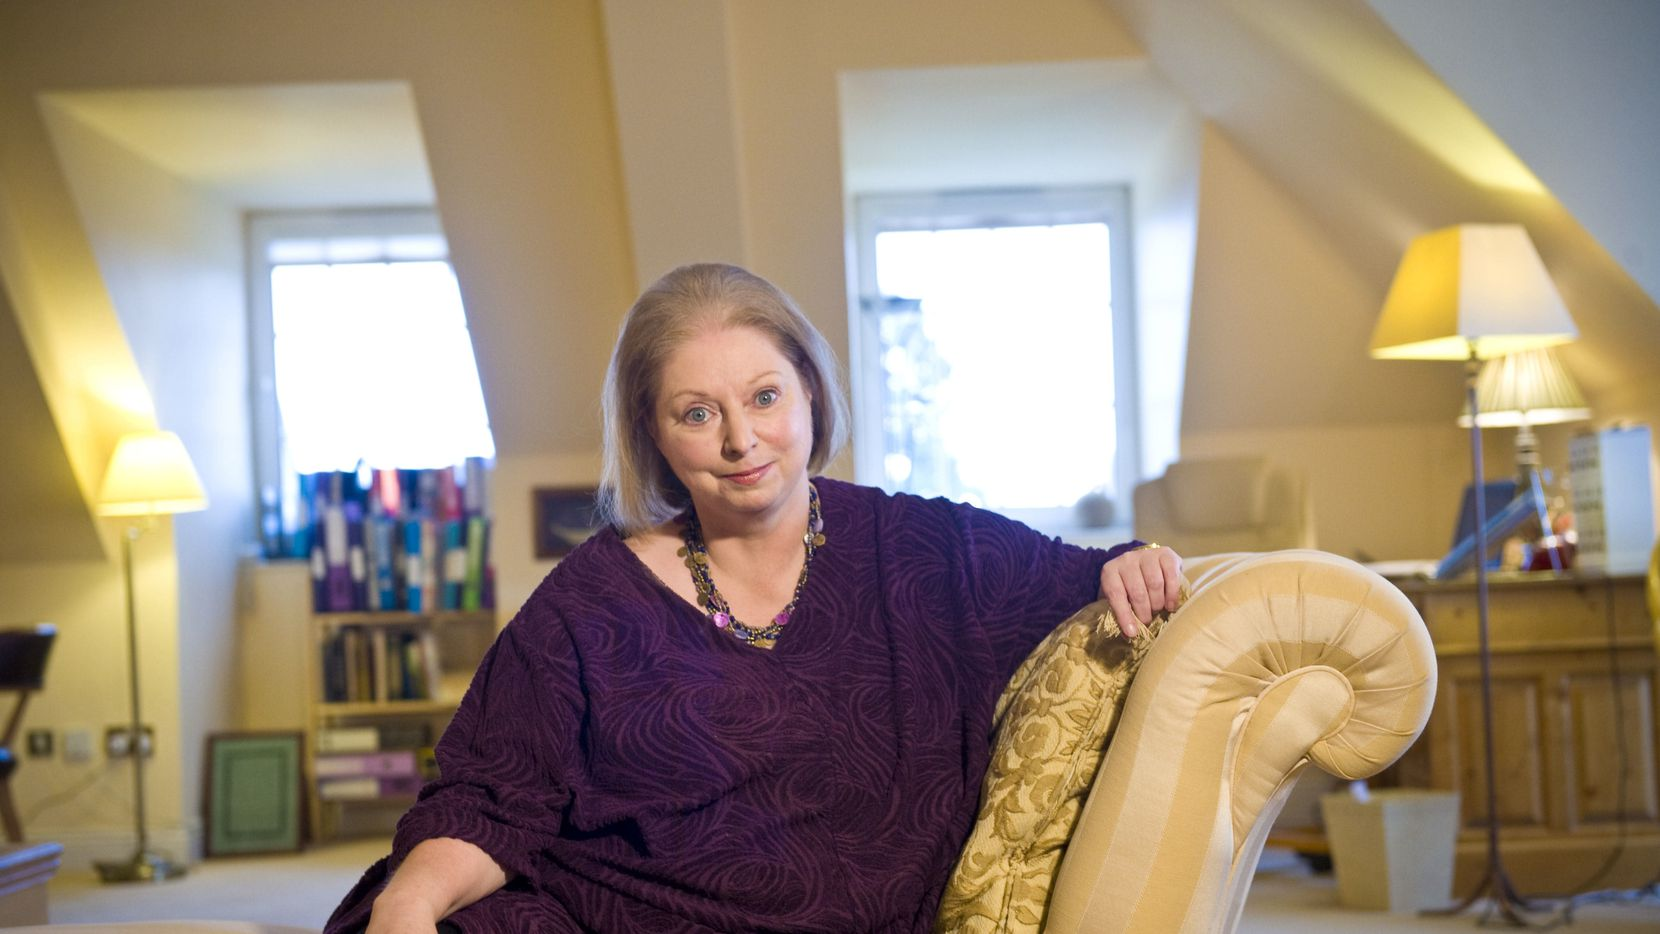 Hilary Mantel at her home in Surrey, England in 2012